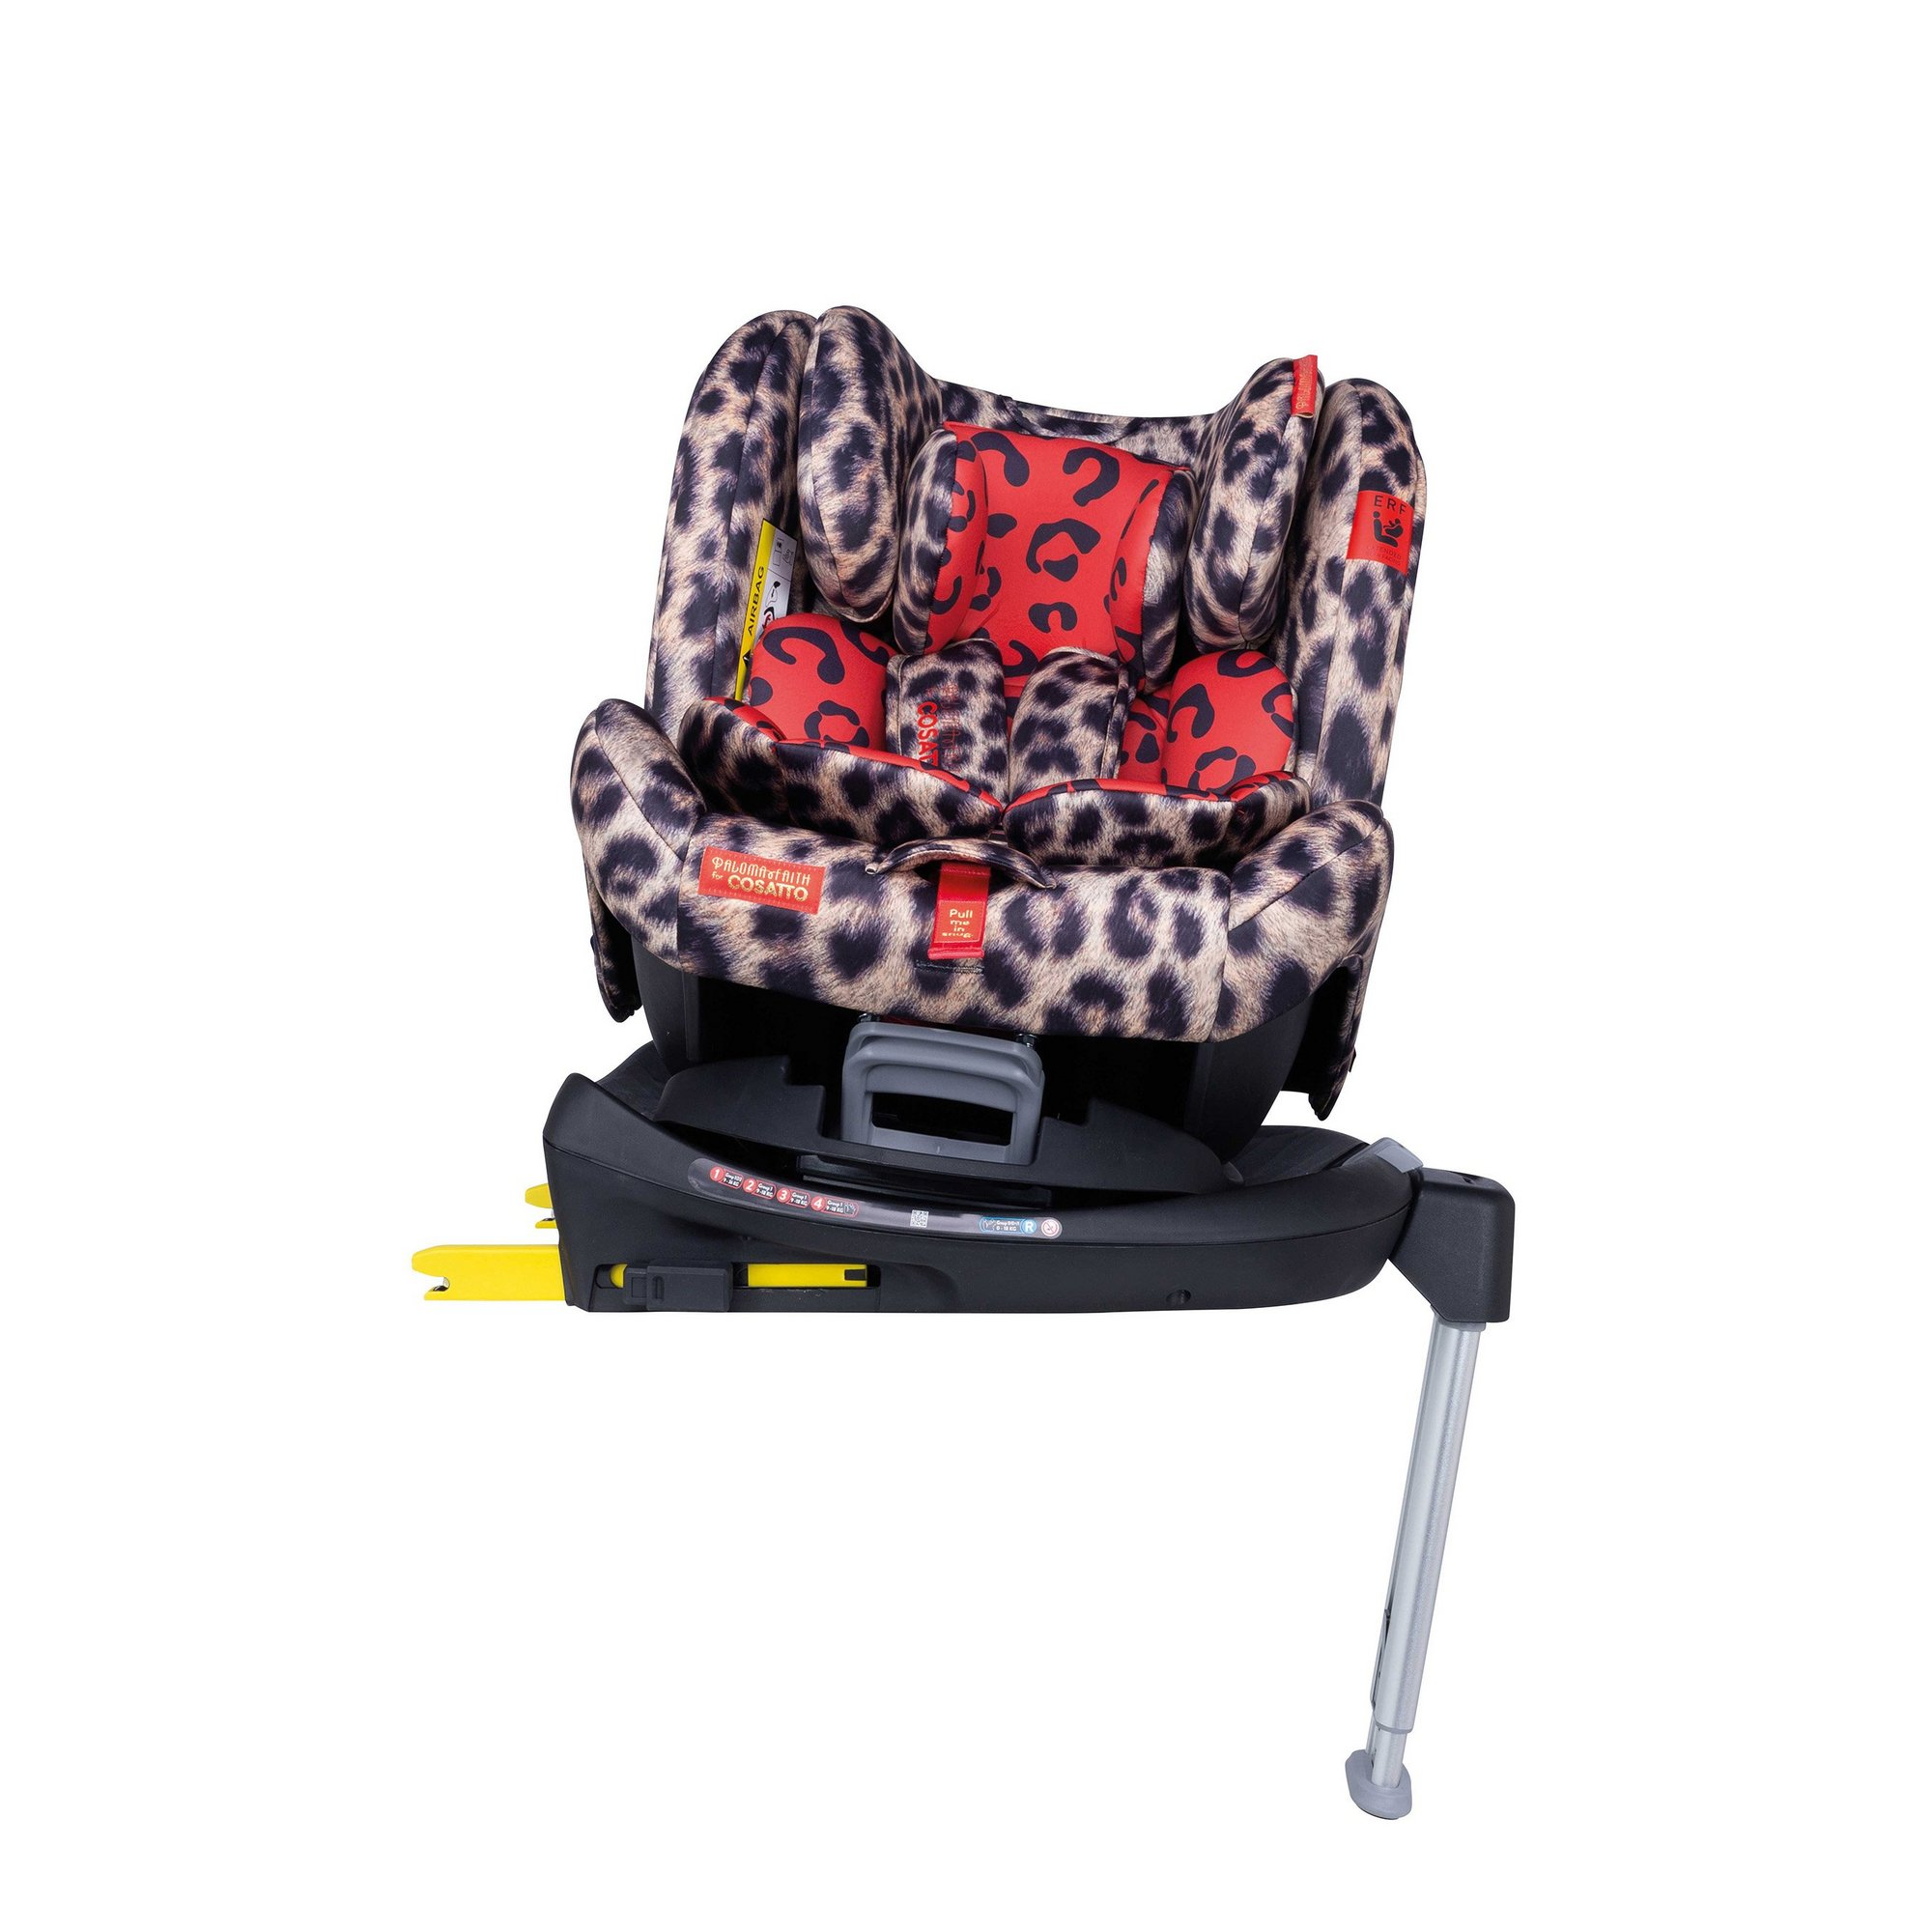 Image of Cosatto Paloma All In All Rotate Group 0+123 Car Seat Hear Us Roar